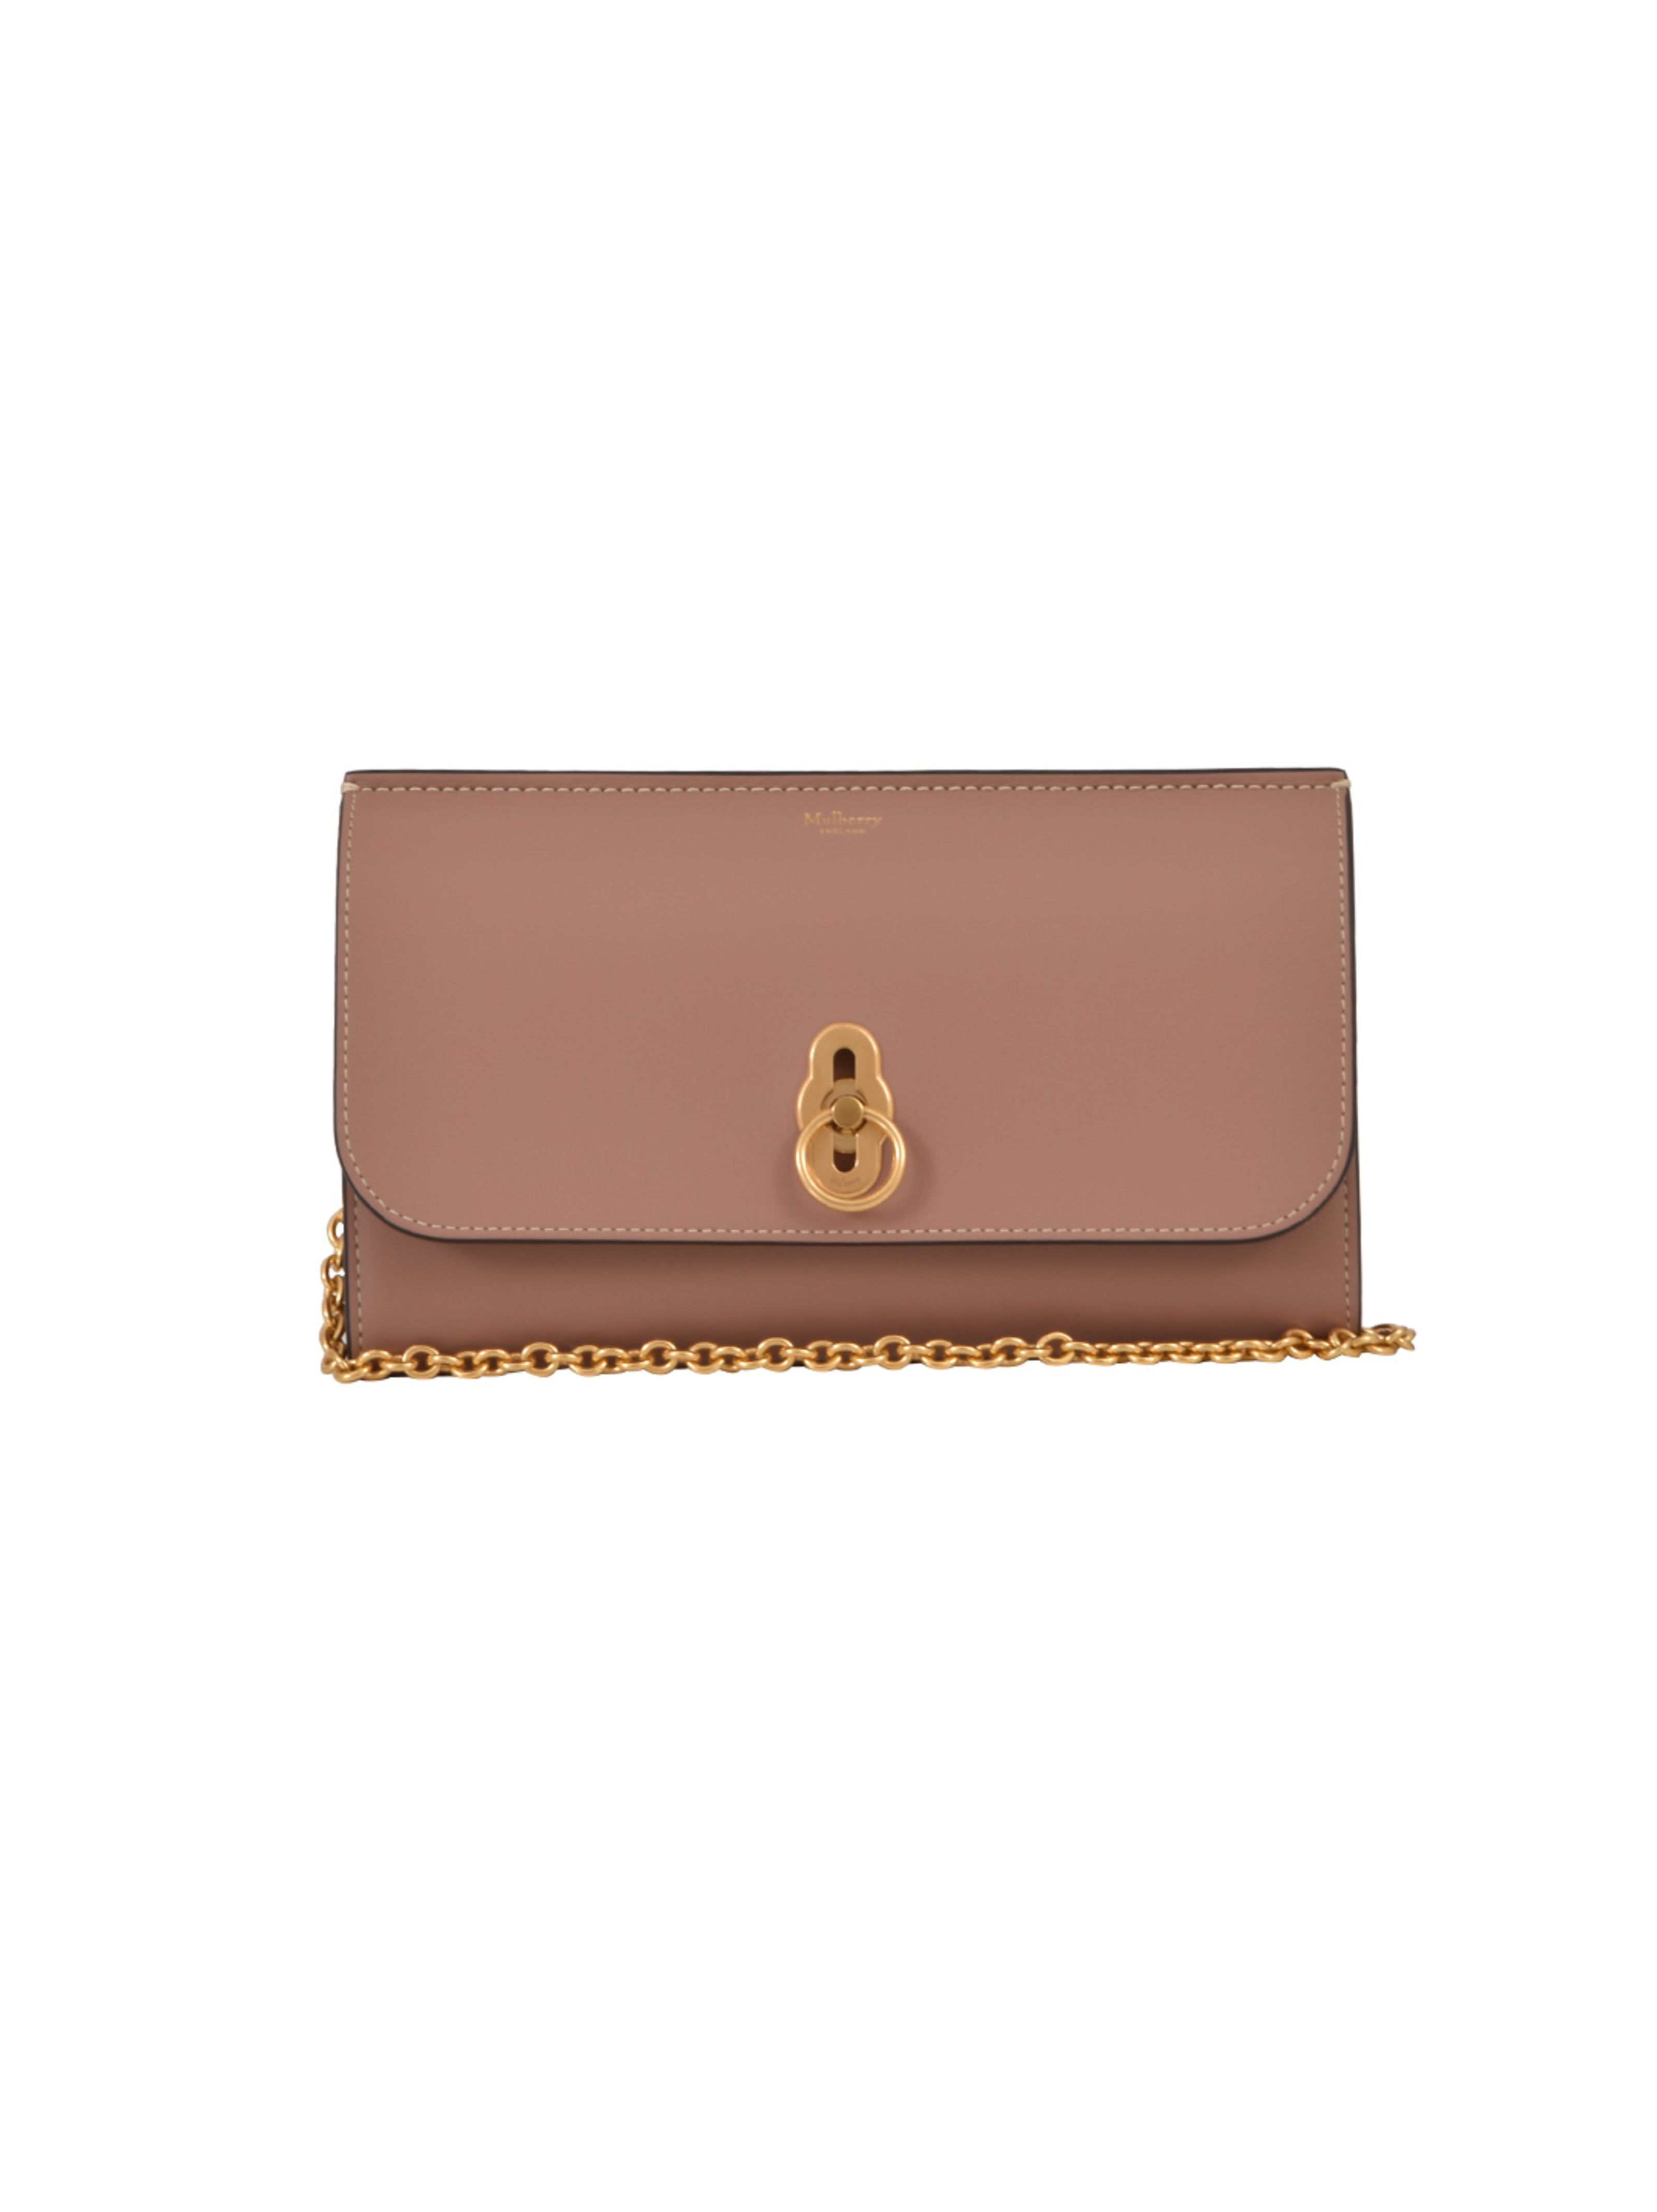 6f17d038c0 MULBERRY AMBERLEY CLUTCH LIGHT PINK. #mulberry #bags #shoulder bags #clutch  #lining #suede #hand bags #